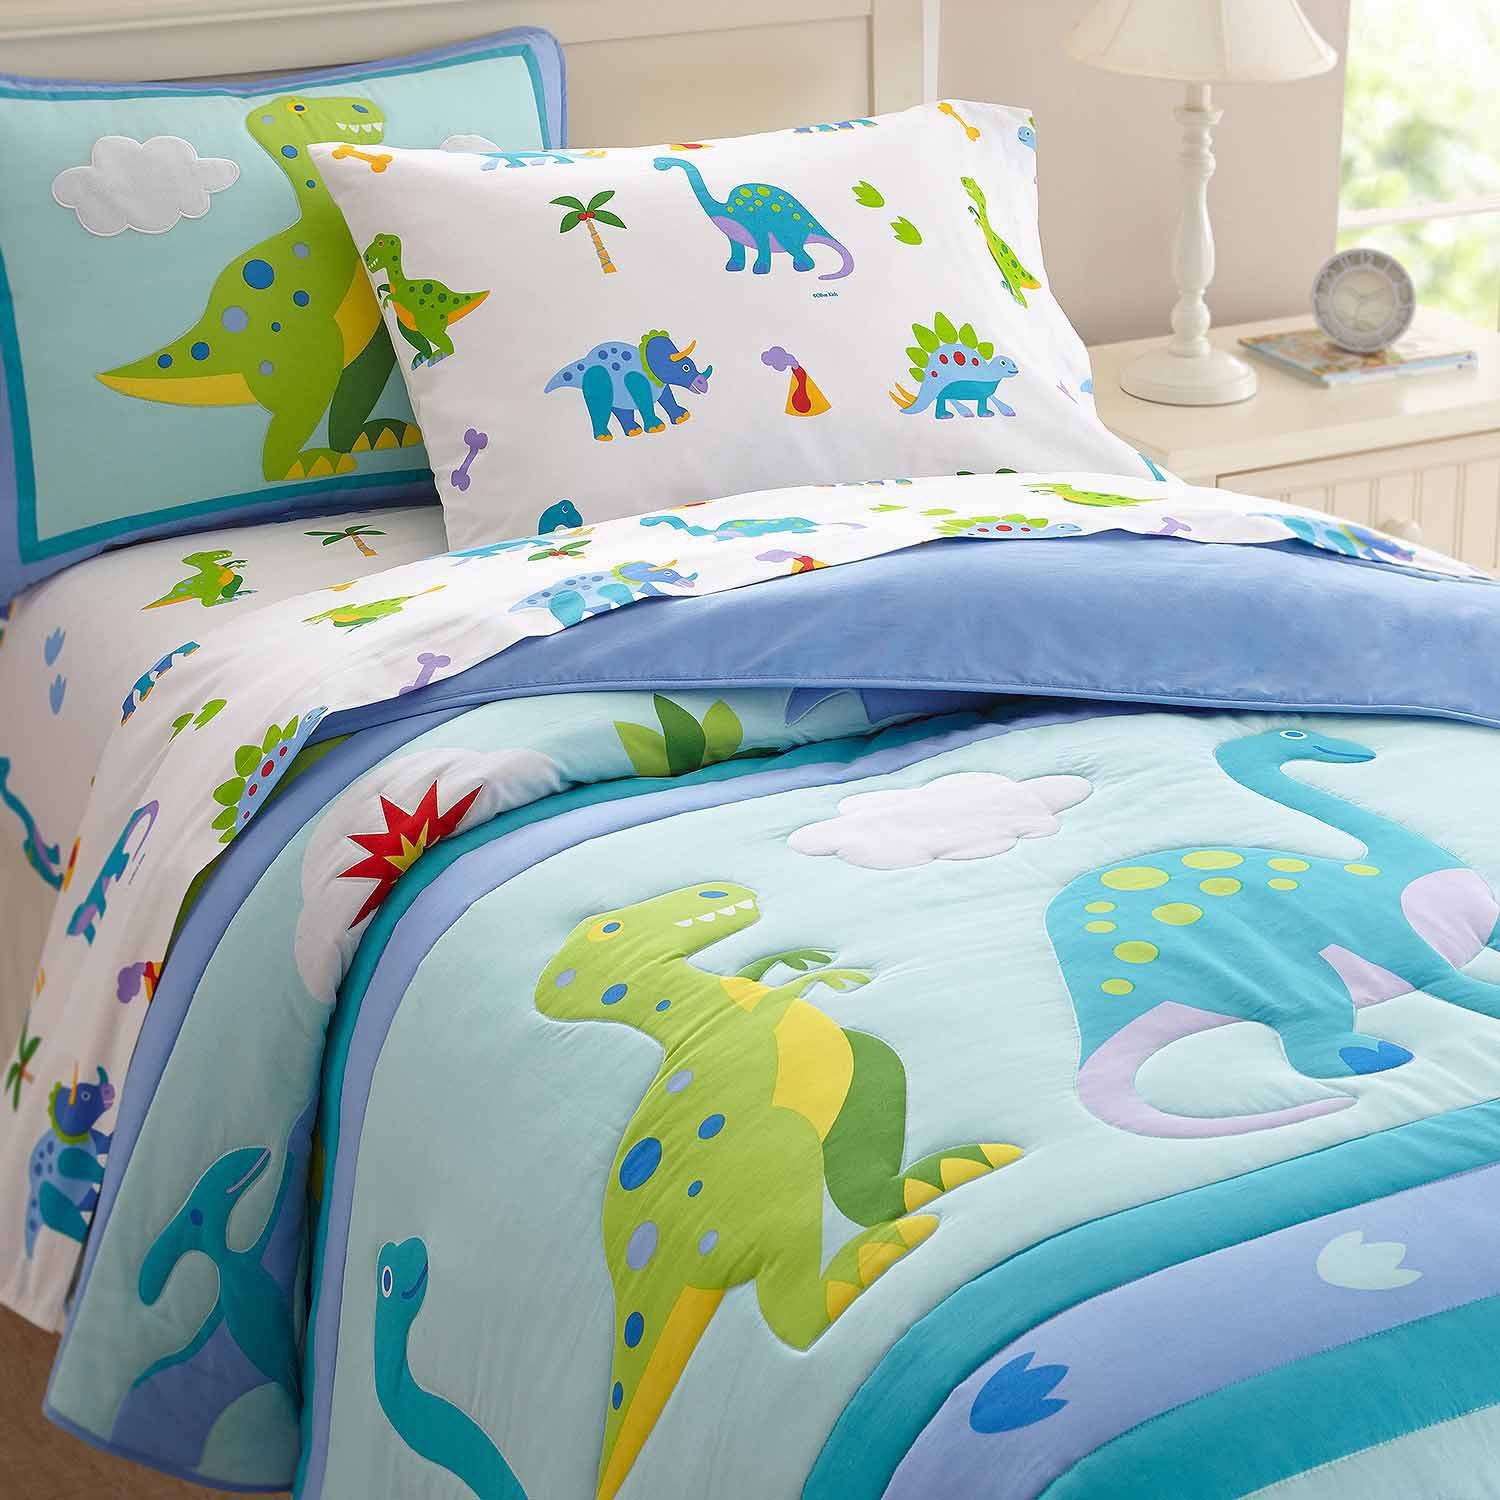 Olive Kids Dinosaur Land Bedding Comforter Set